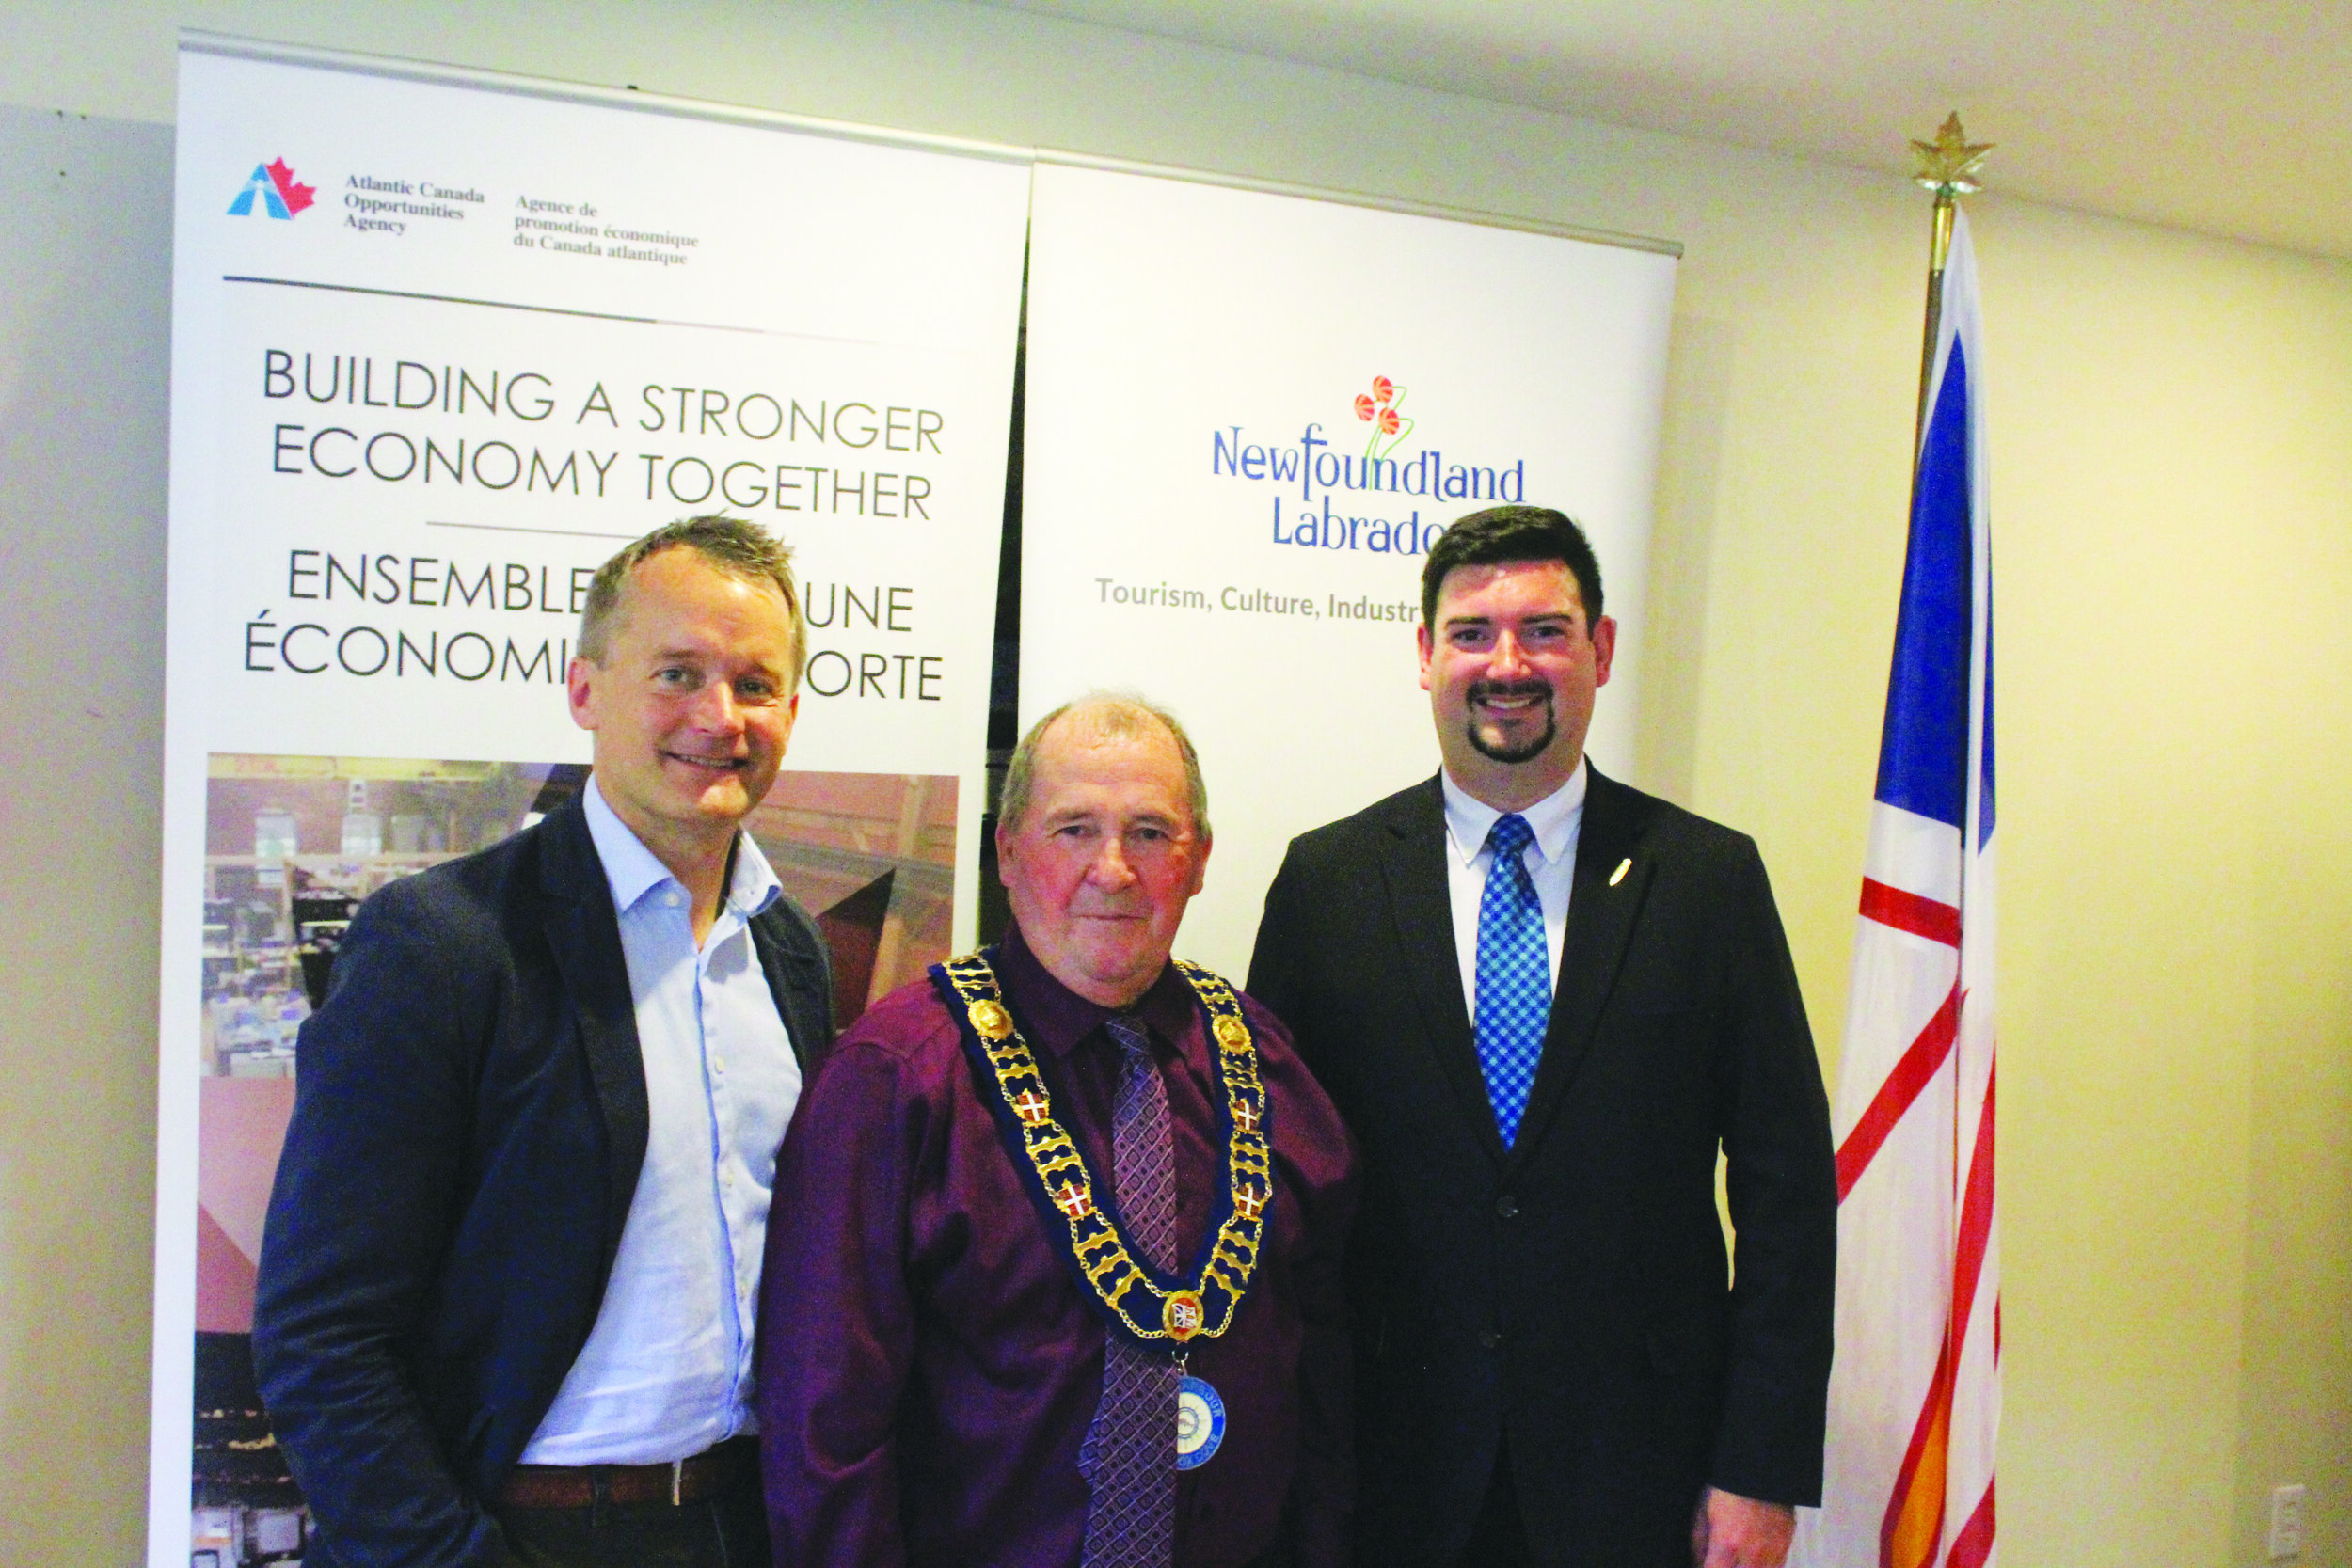 From left to right are St. John's South — Mount Pearl MP Seamus O' Regan, Town of Petty Harbour—Maddox Cove Mayor Samuel Lee, and Minister of Business, Tourism, Culture and Rural Development Christopher Mitchelmore. Mark Squibb photo